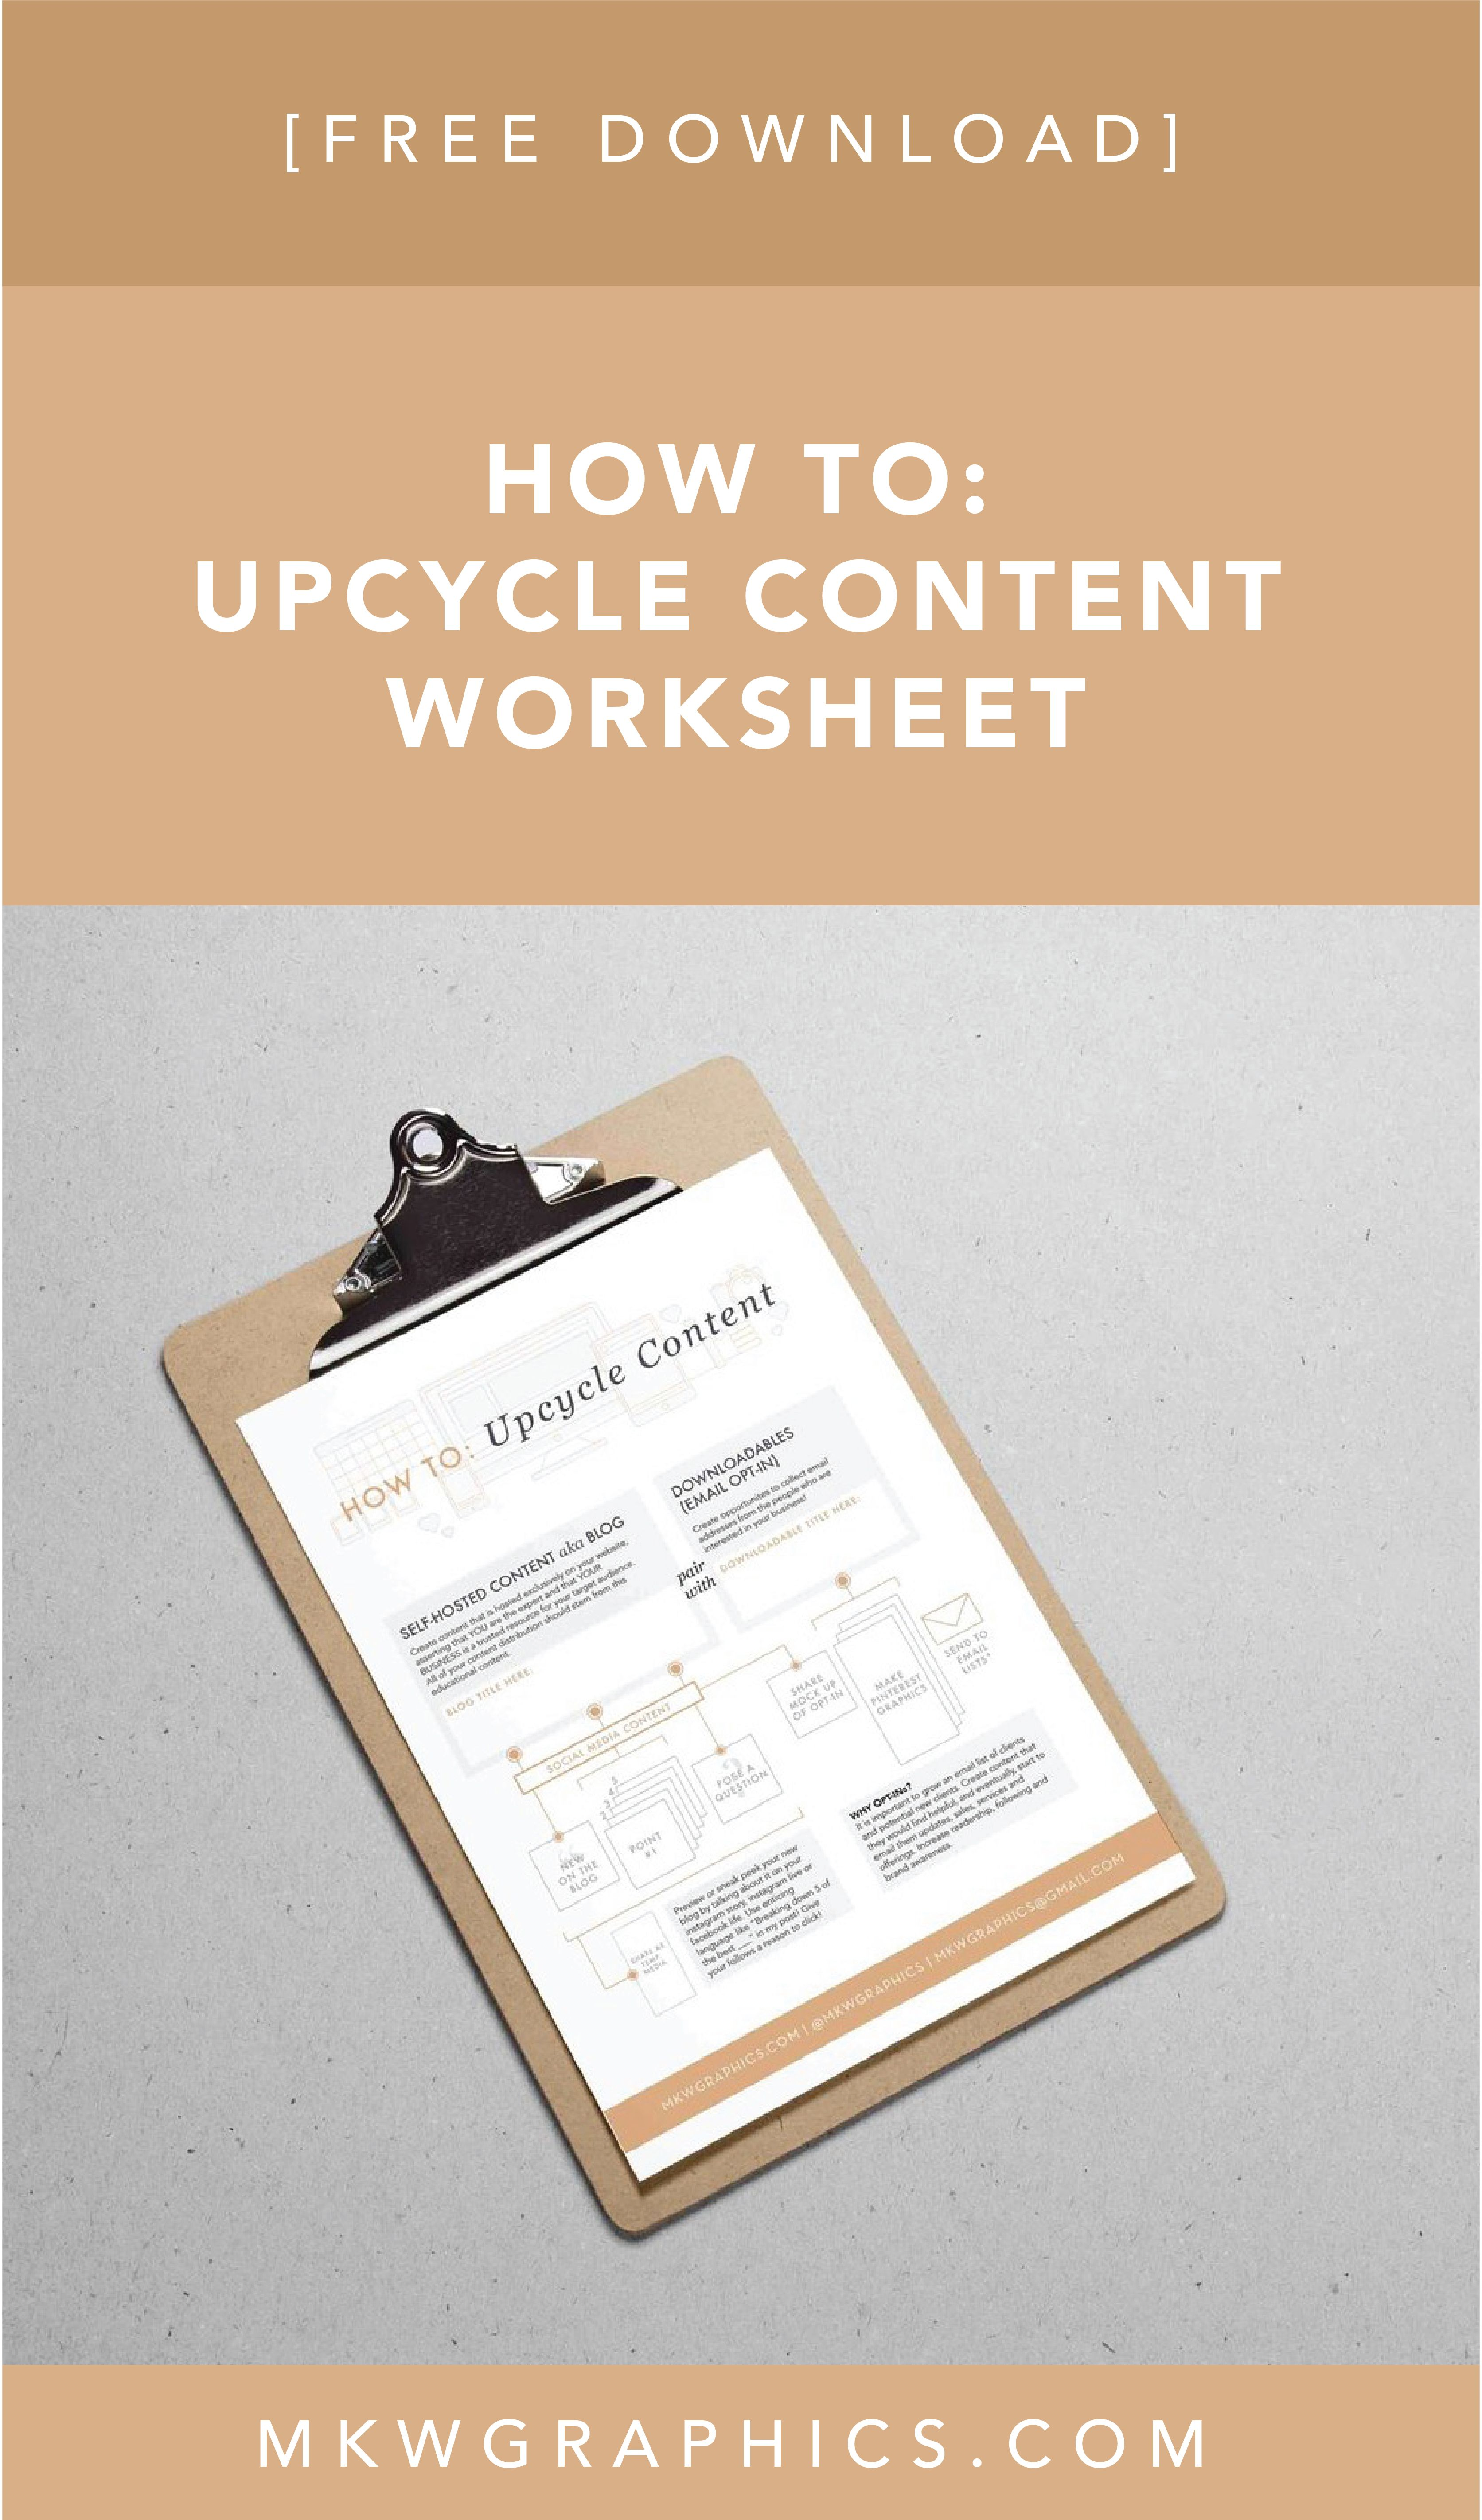 How To Upcycle Content Worksheet By Brand Designer